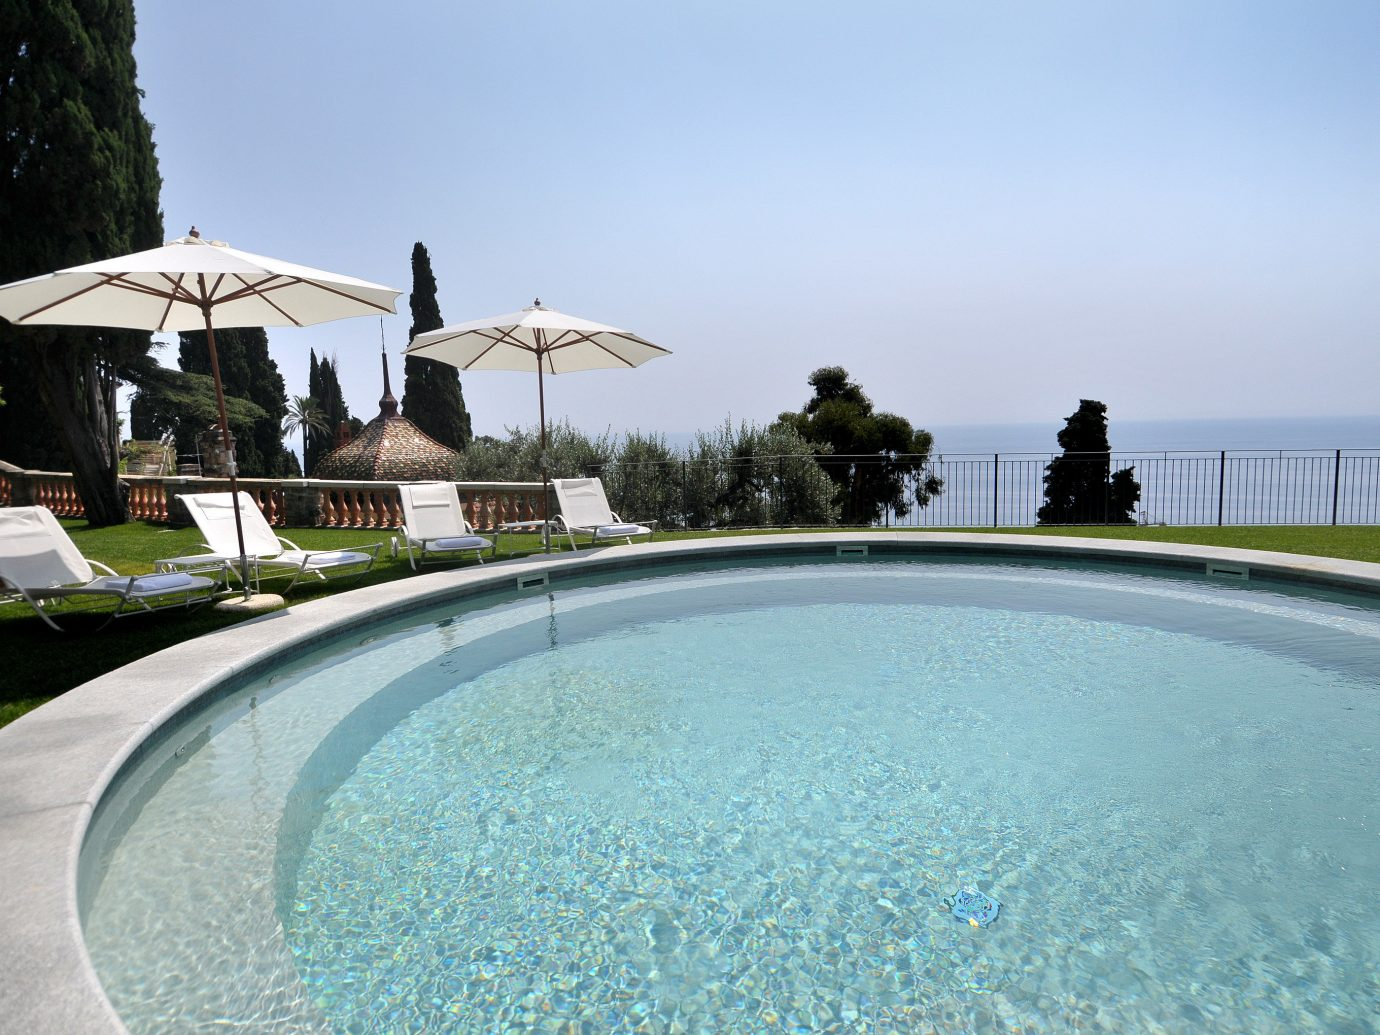 Italy Trip Ideas swimming pool water property Resort estate leisure Villa real estate vacation sky Sea house tourism resort town tree